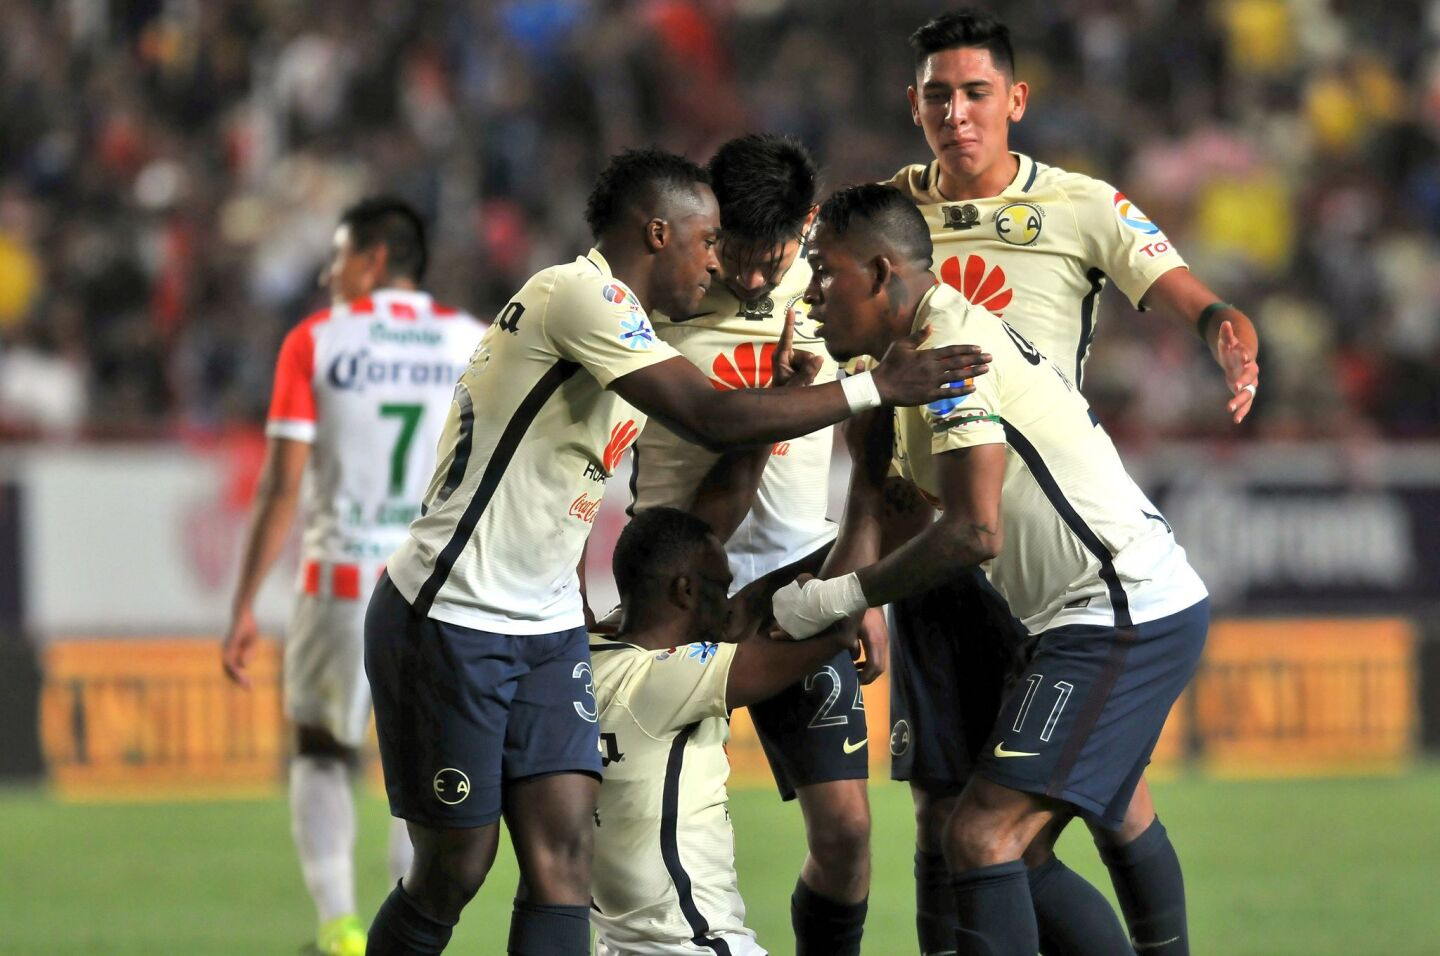 William Da Silva (C Down) of America celebrates his goal with his teammates during the macth against Necaxa during their Mexican Apertura 2016 Tournament first leg semifinal football match at Victoria stadium on December 01, 2016, in Aguascalientes,Mexico. / AFP PHOTO / VICTOR CRUZVICTOR CRUZ/AFP/Getty Images ** OUTS - ELSENT, FPG, CM - OUTS * NM, PH, VA if sourced by CT, LA or MoD **